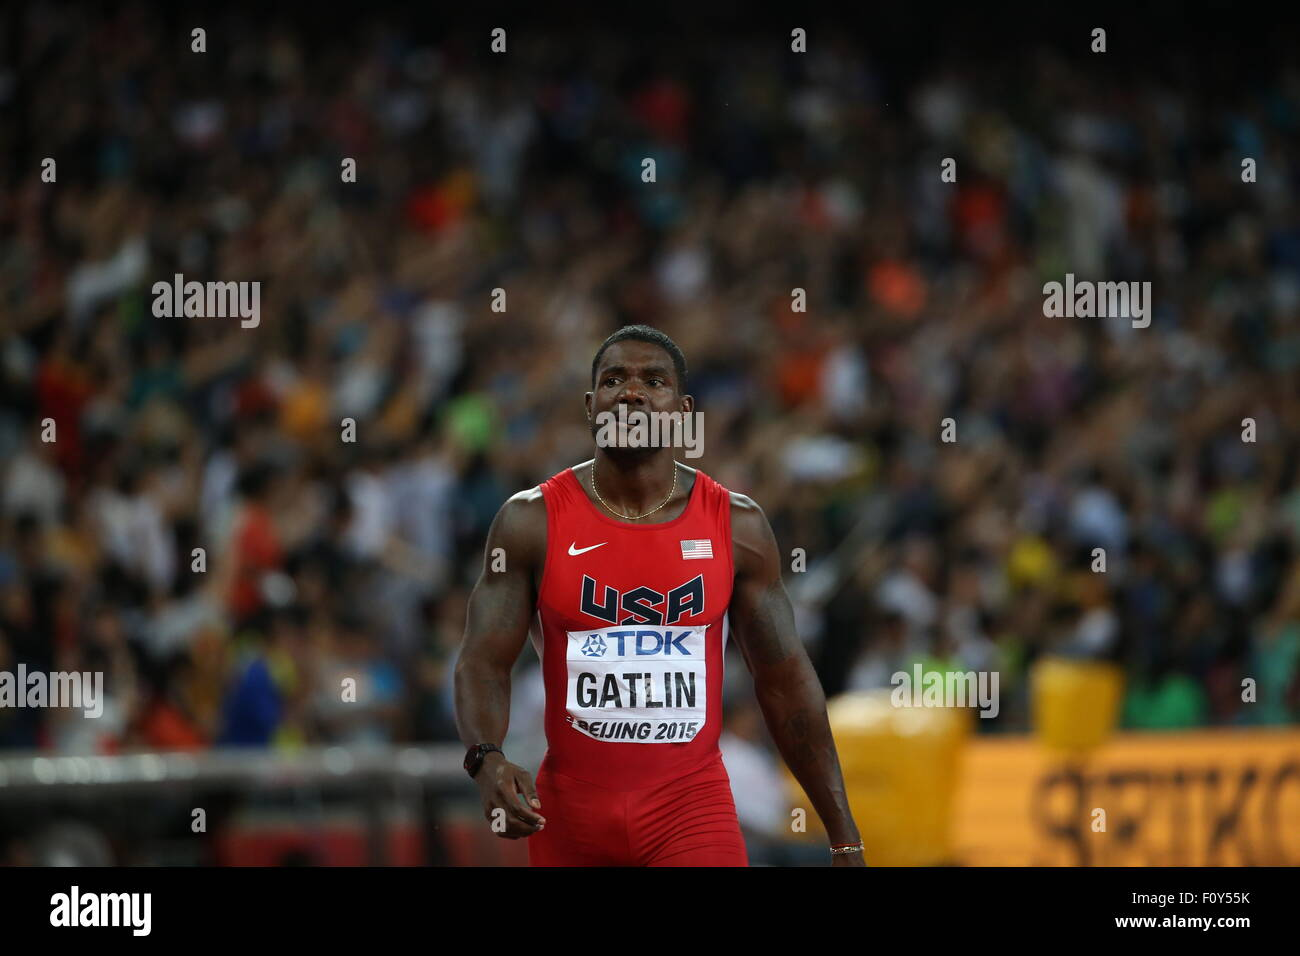 Beijing, China. 23rd Aug, 2015. Justin Gatlin reacts after the men's 100m final at the 2015 IAAF World Championships - Stock Image